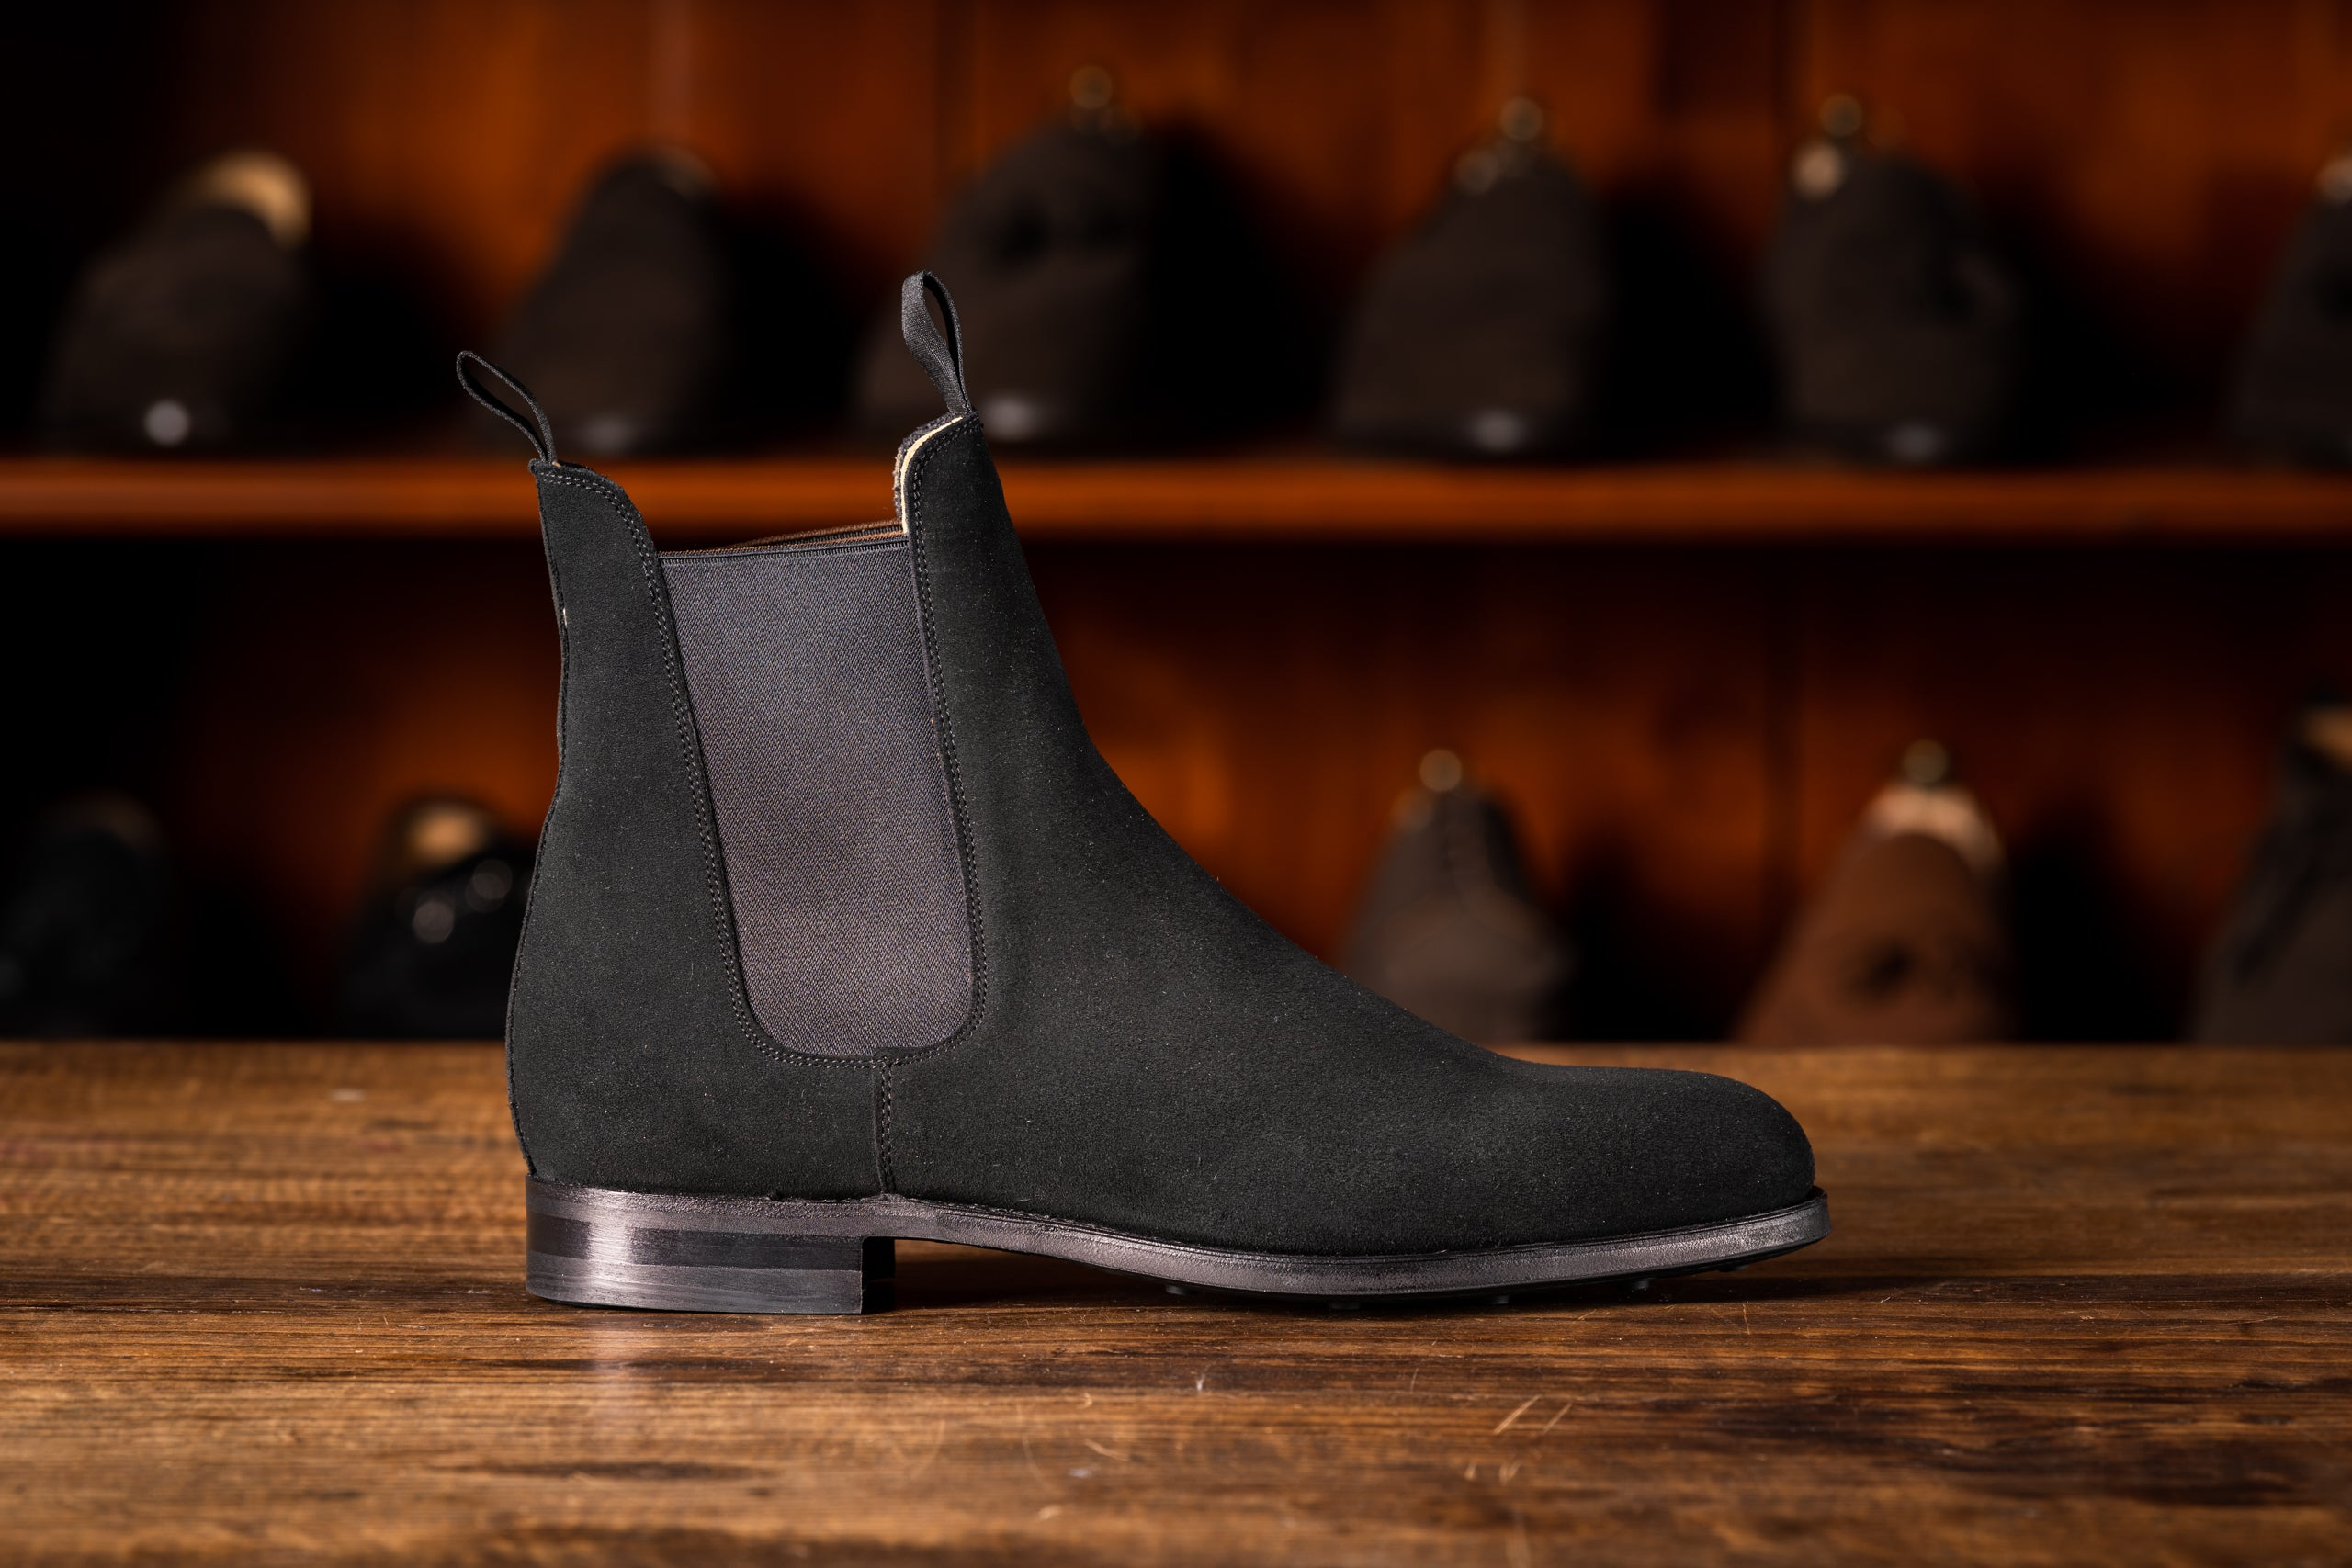 Chelsea Boot // English Suede // Schwarz // Dainite Sohle